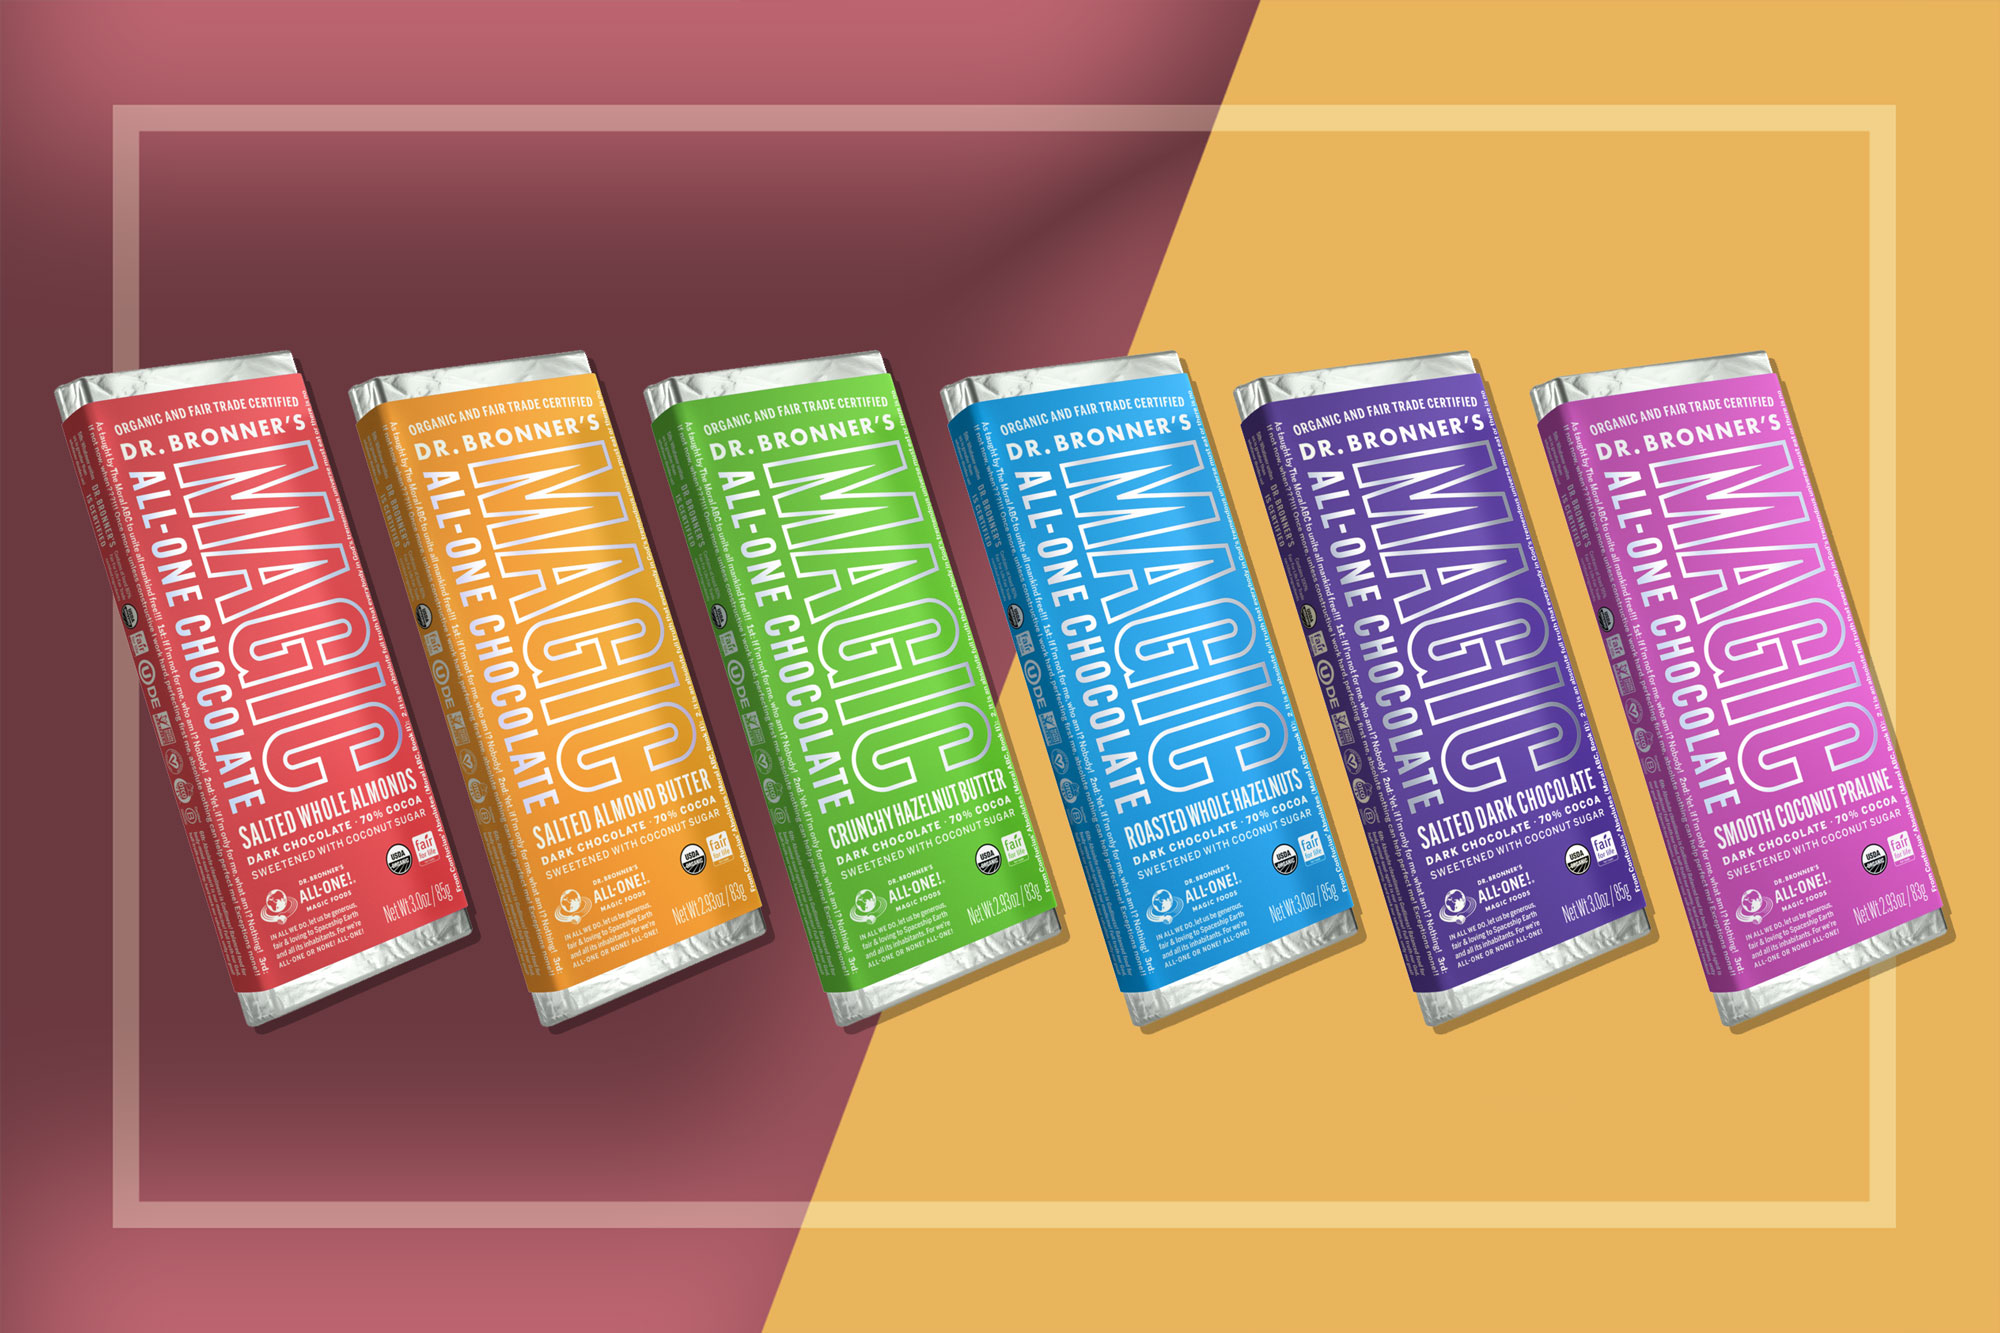 Dr. Bronner's Chocolate bars in assorted flavors